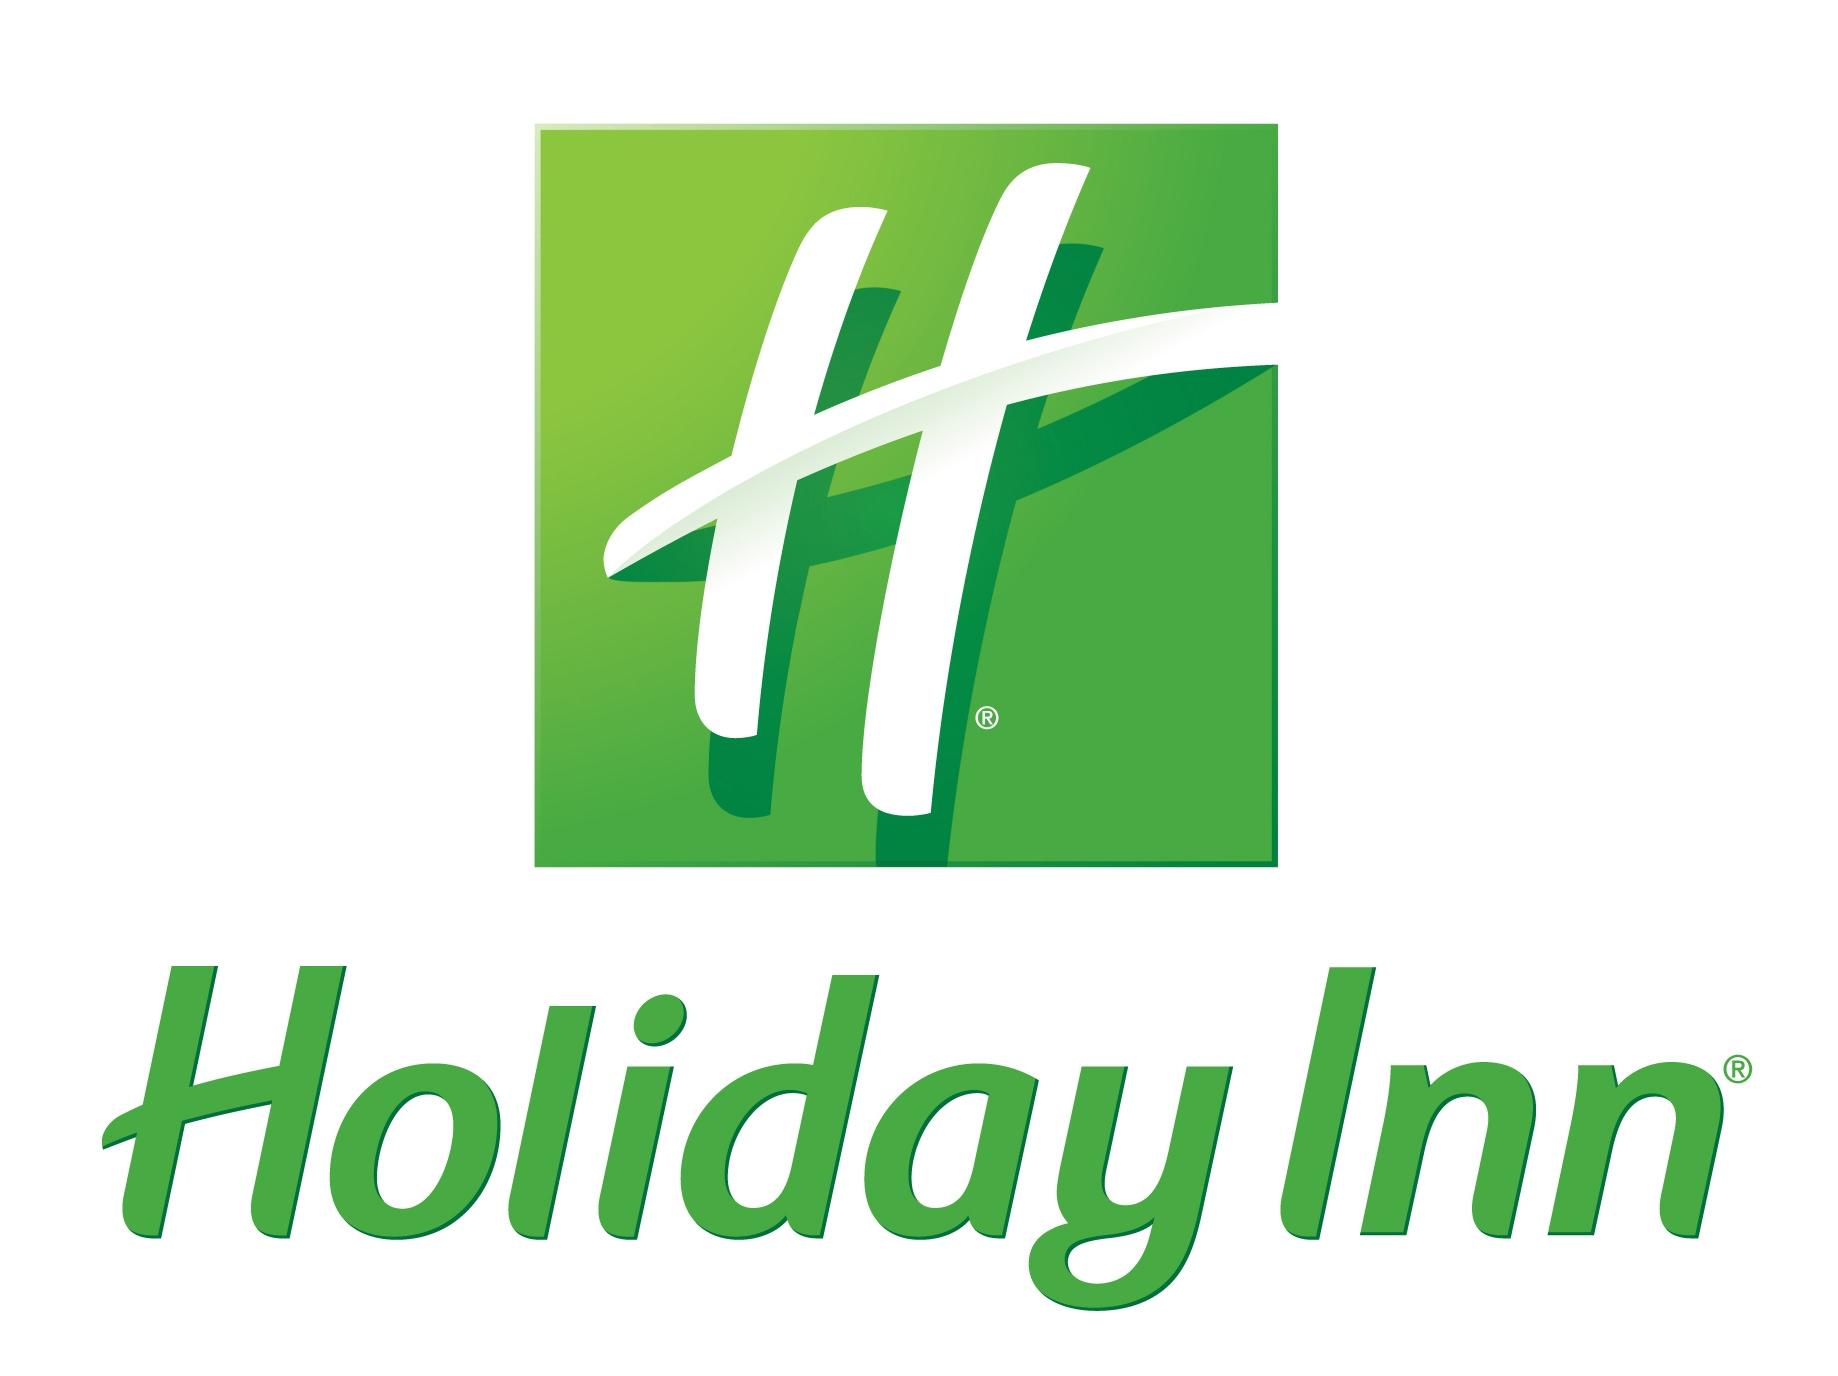 holiday_inn_core_logo___jpg_formatholiday_inn_core_logo___jpg_format_da_1632229_6